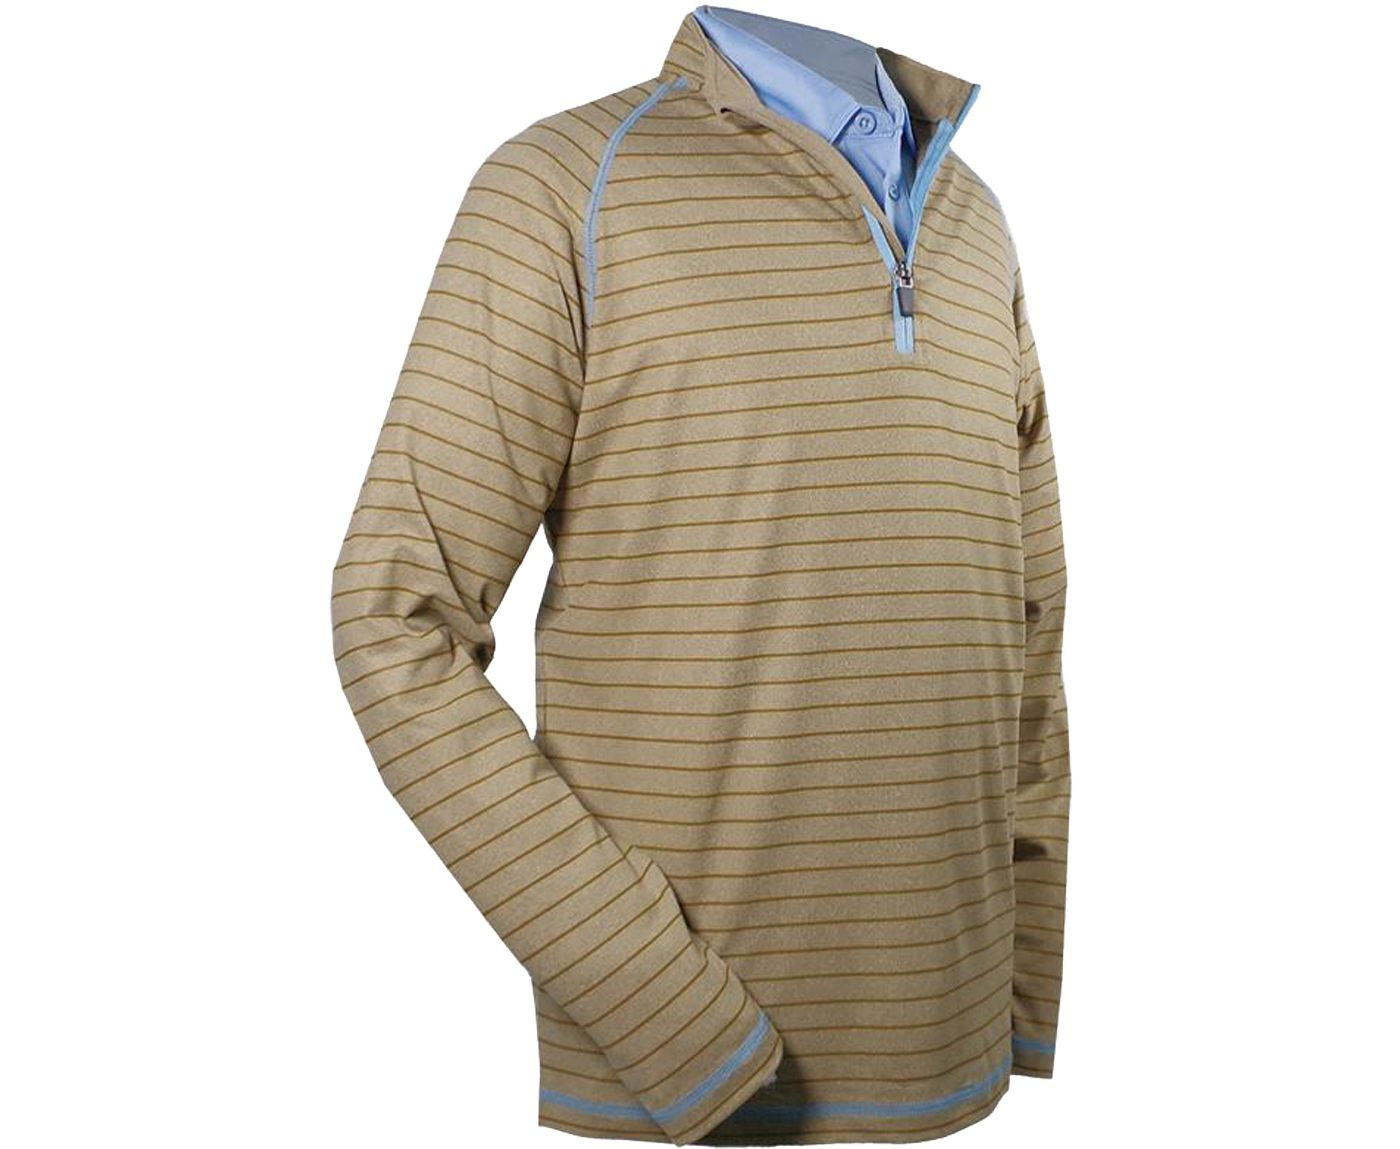 Garb Boys' Zyk Pullover Jacket